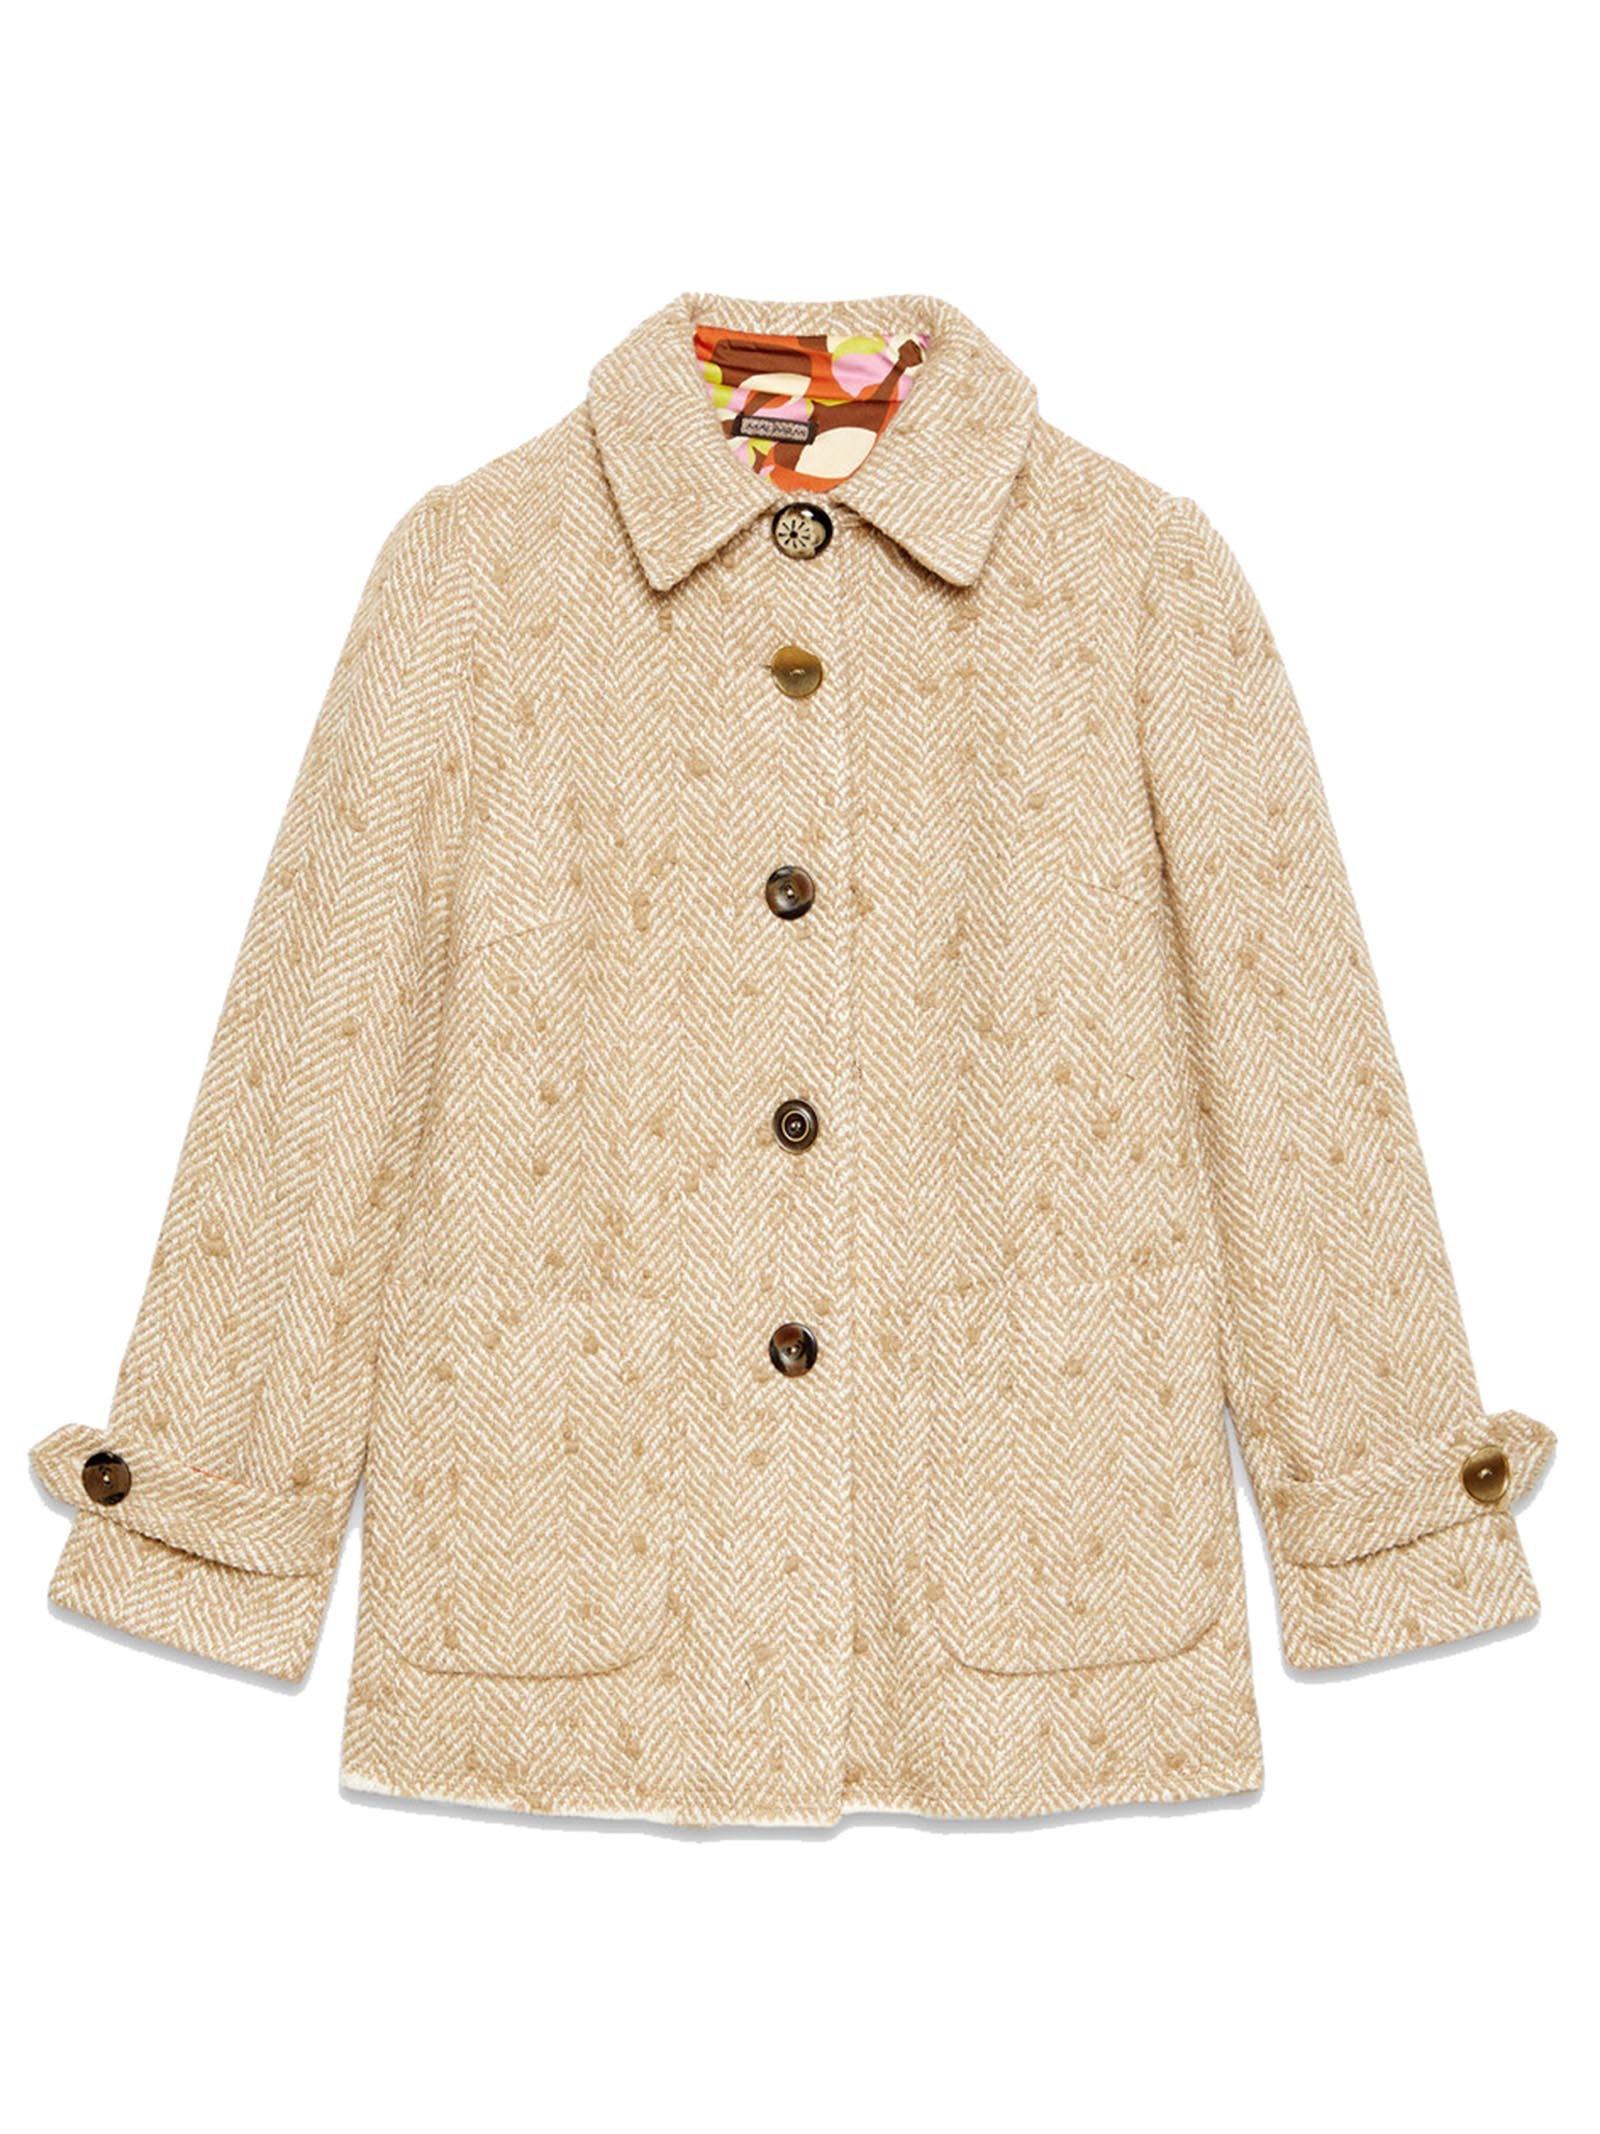 Women's Clothing Single-breasted Herringbone Jacket in Beige Wool and Jewel Buttons Maliparmi | Coats and jackets | JA52632019212B10